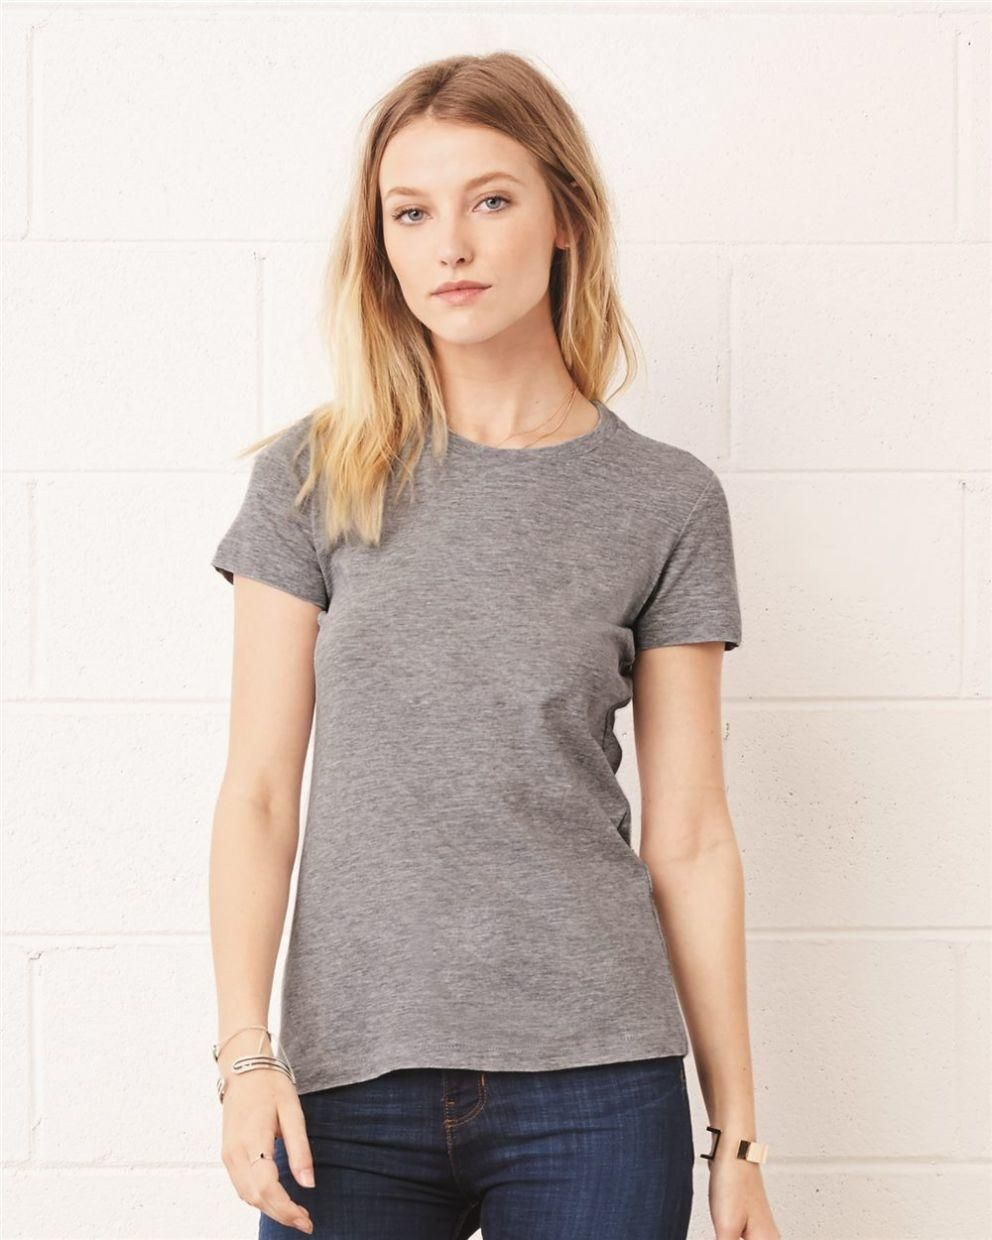 eb26f7781084d Bella + Canvas - Women s The Favorite Tee - 6004